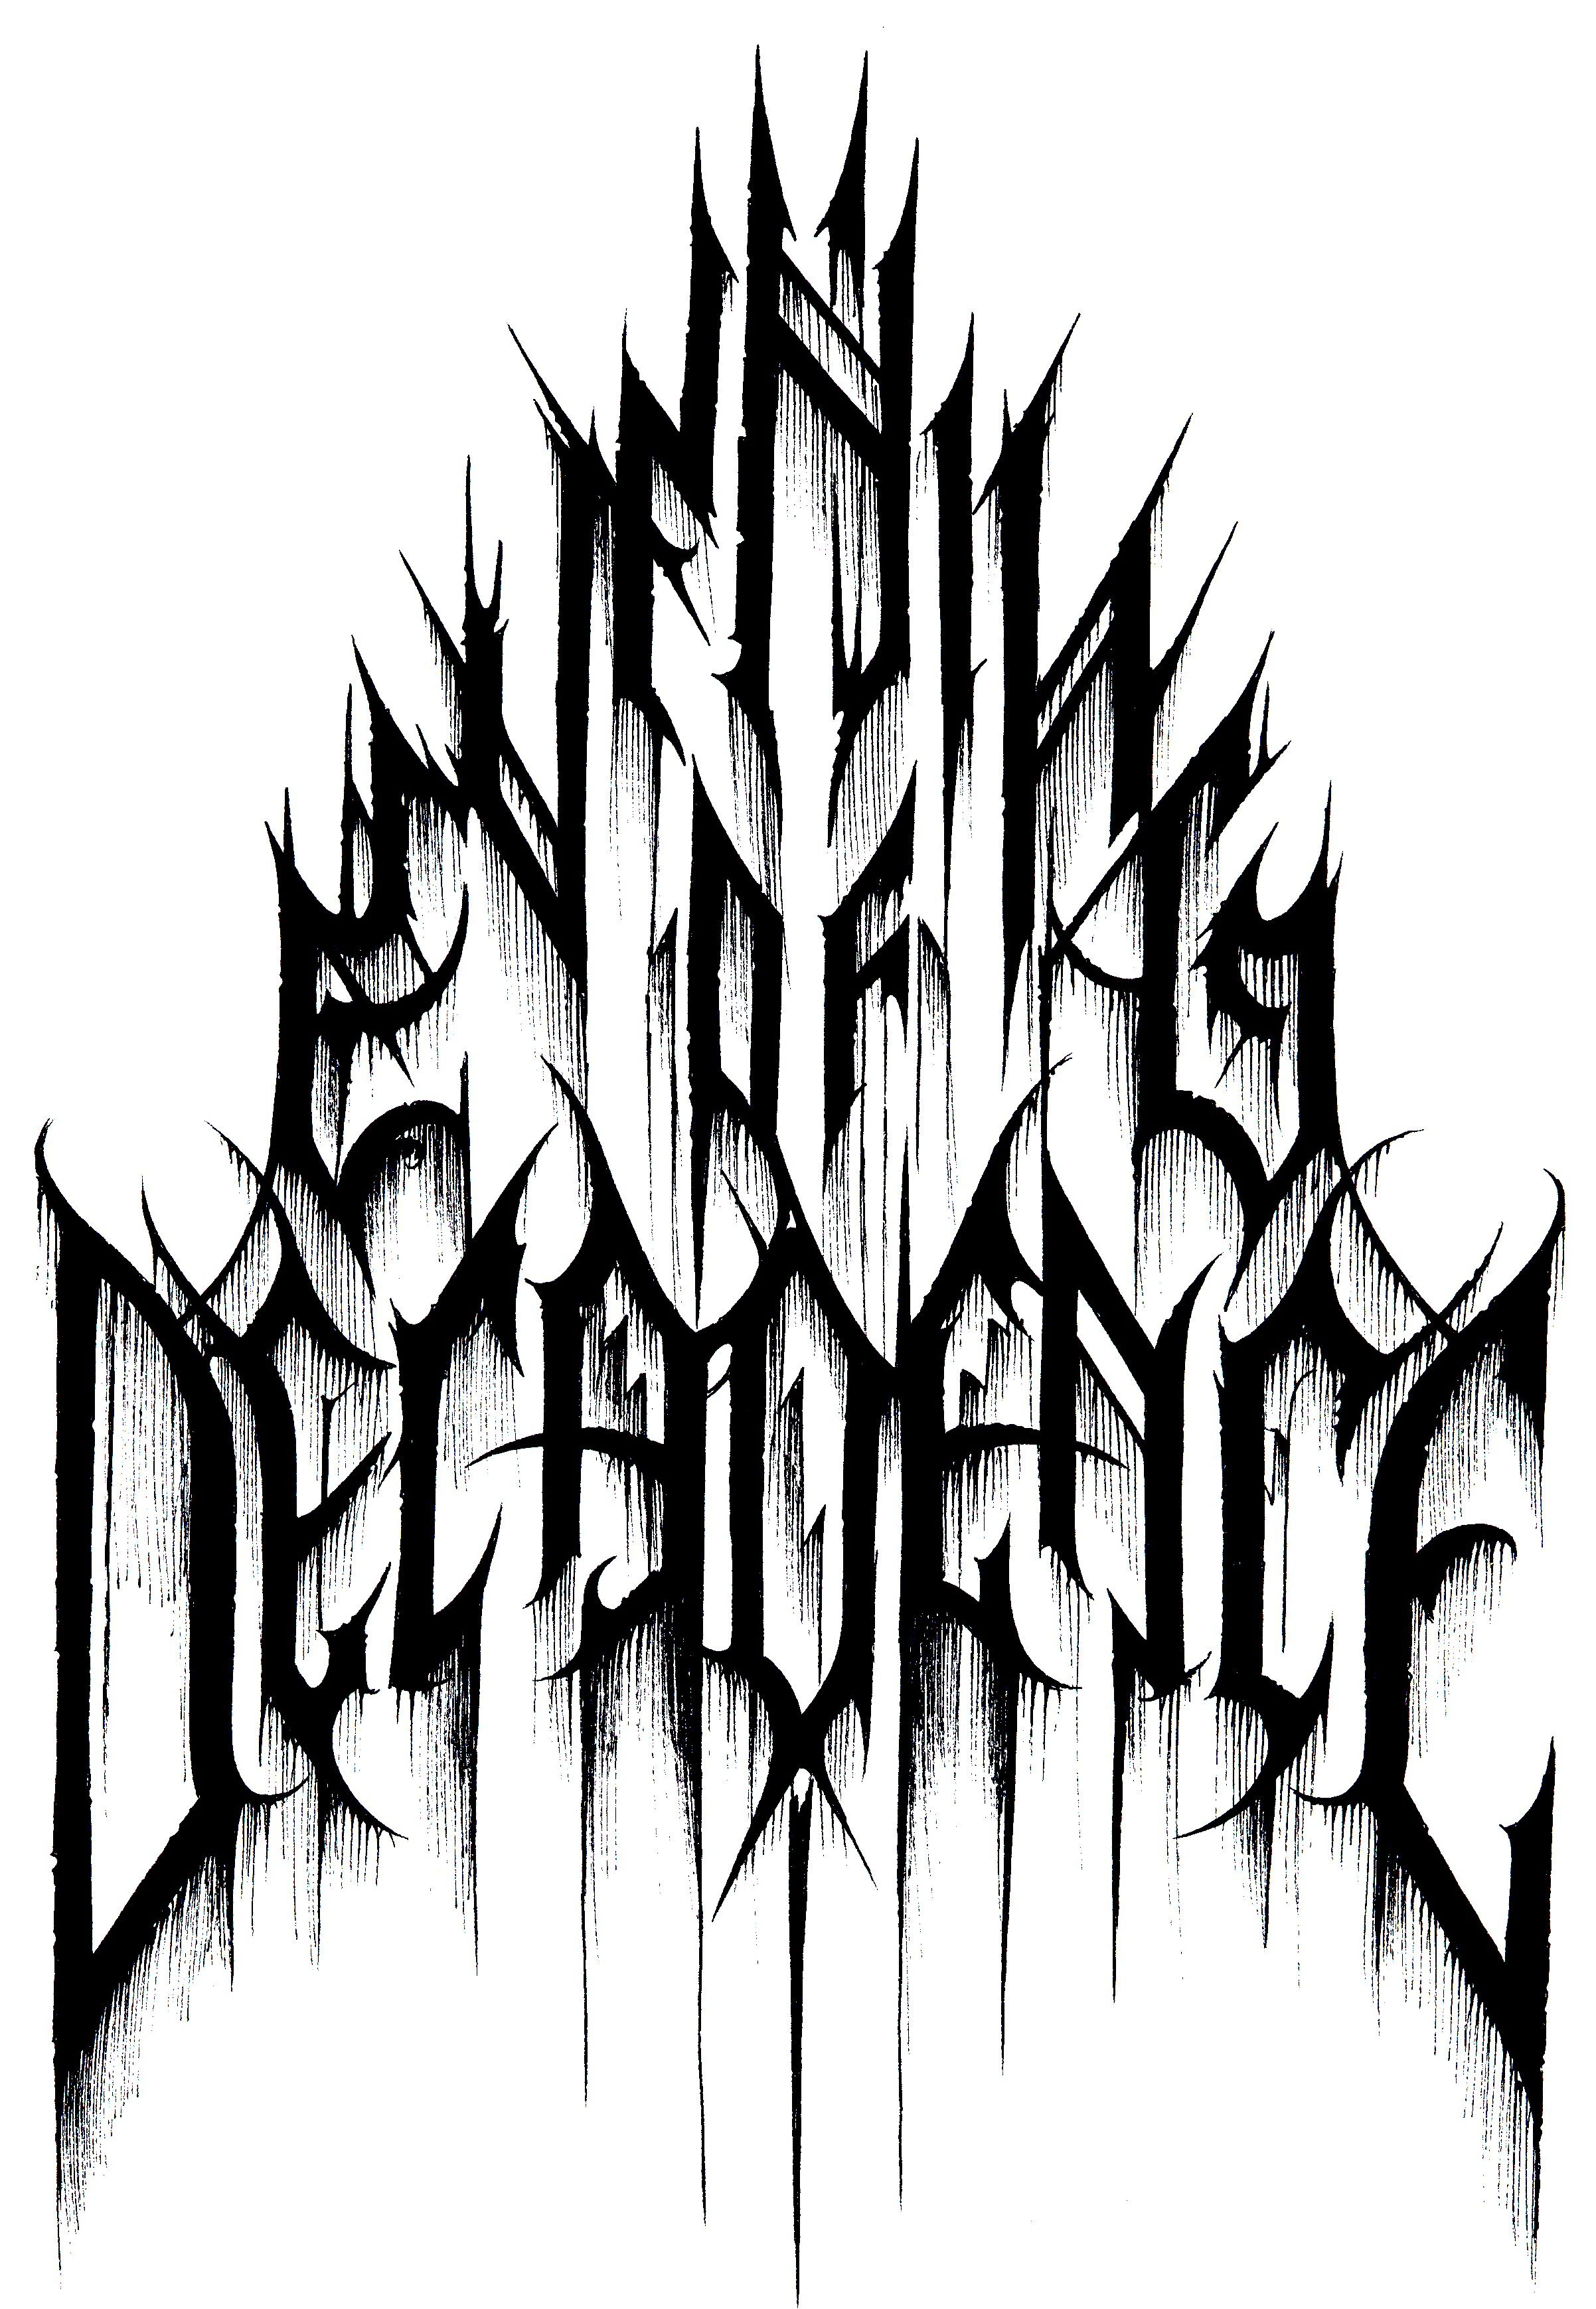 metal band logo ideas real clipart and vector graphics u2022 rh realclipart today